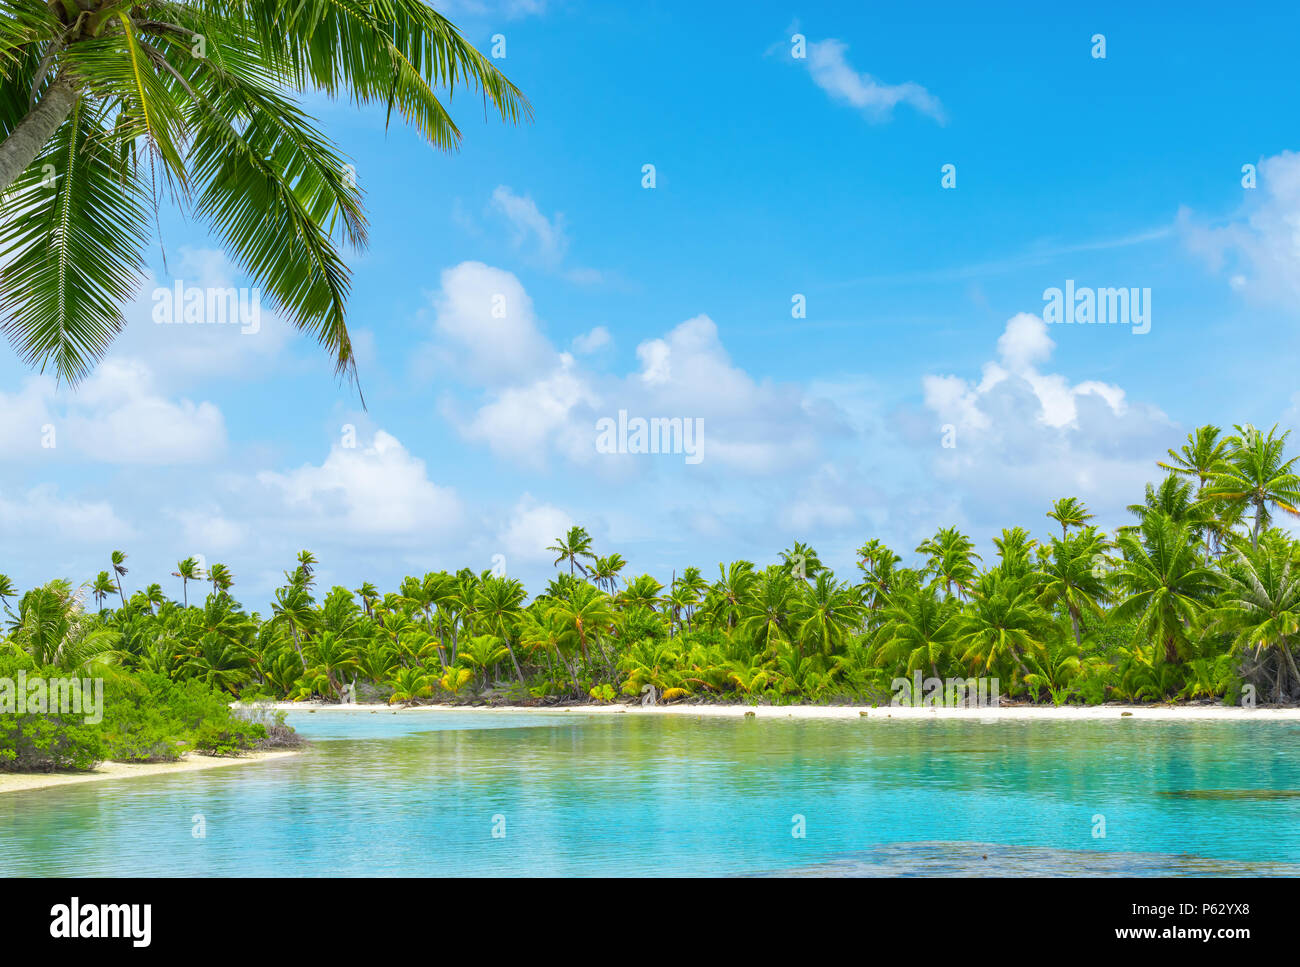 Tropical lagoon scenery with coconut palm trees and blue sky. Exotic summer destination. Stock Photo